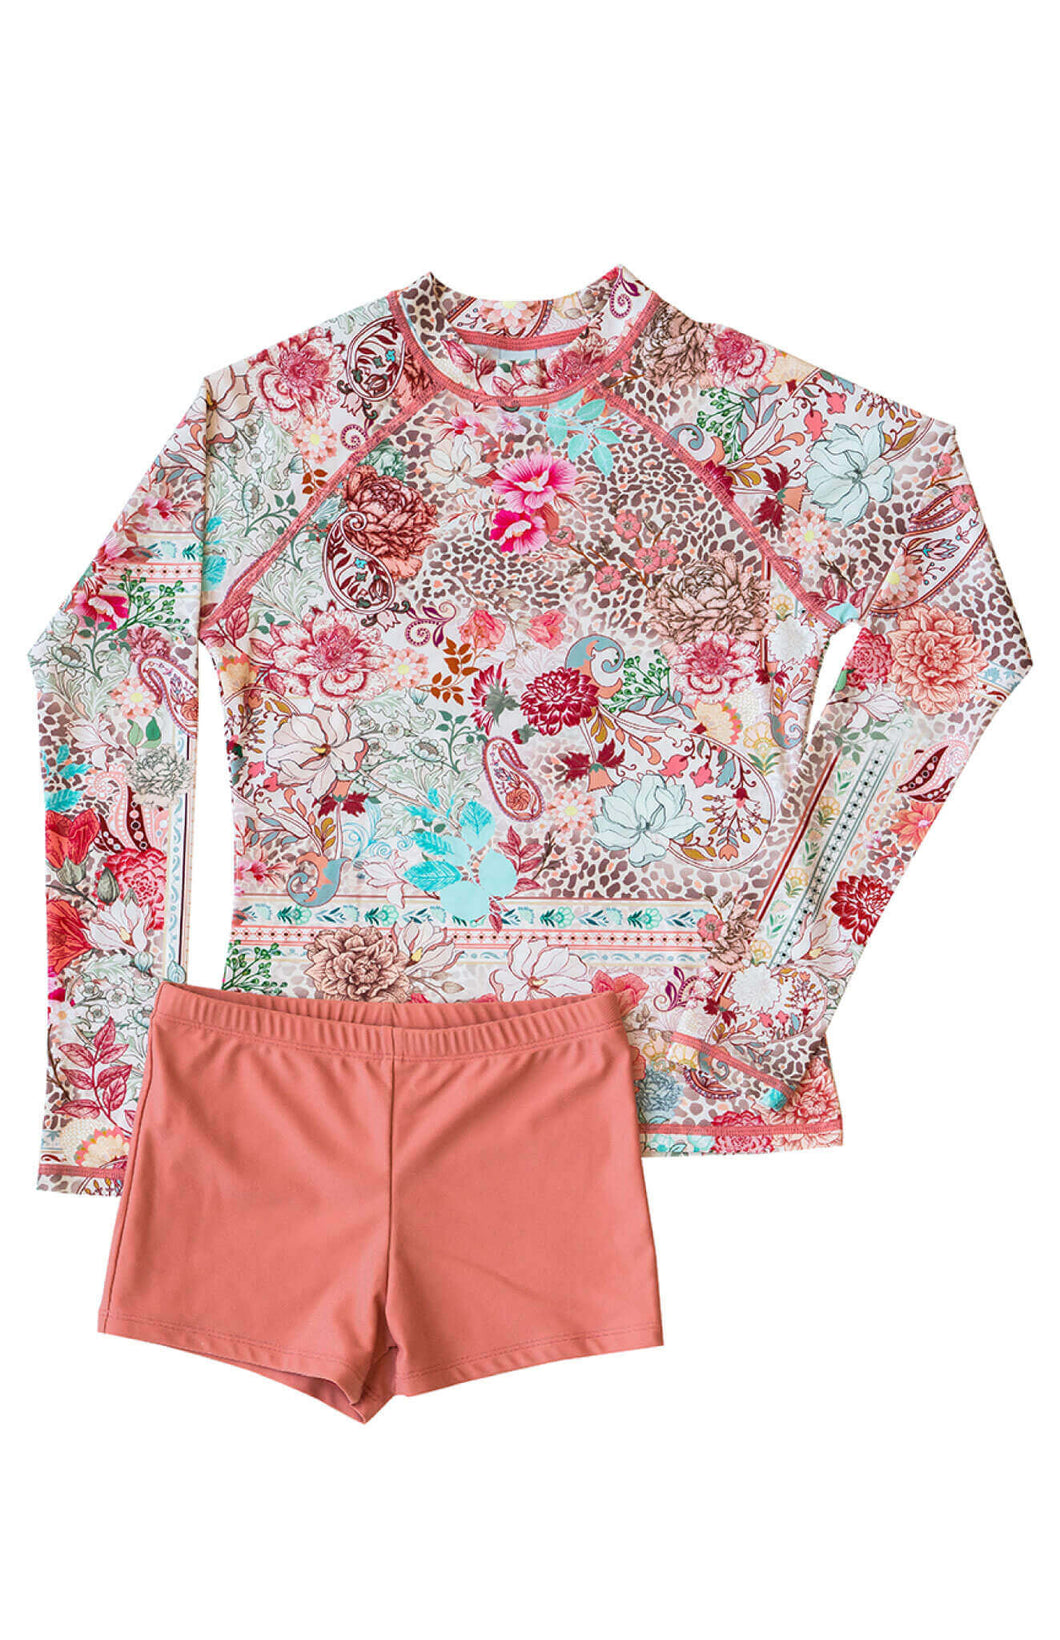 Ellenny Swim Girls Long Sleeve Sun Set Wildflowers Flatlay